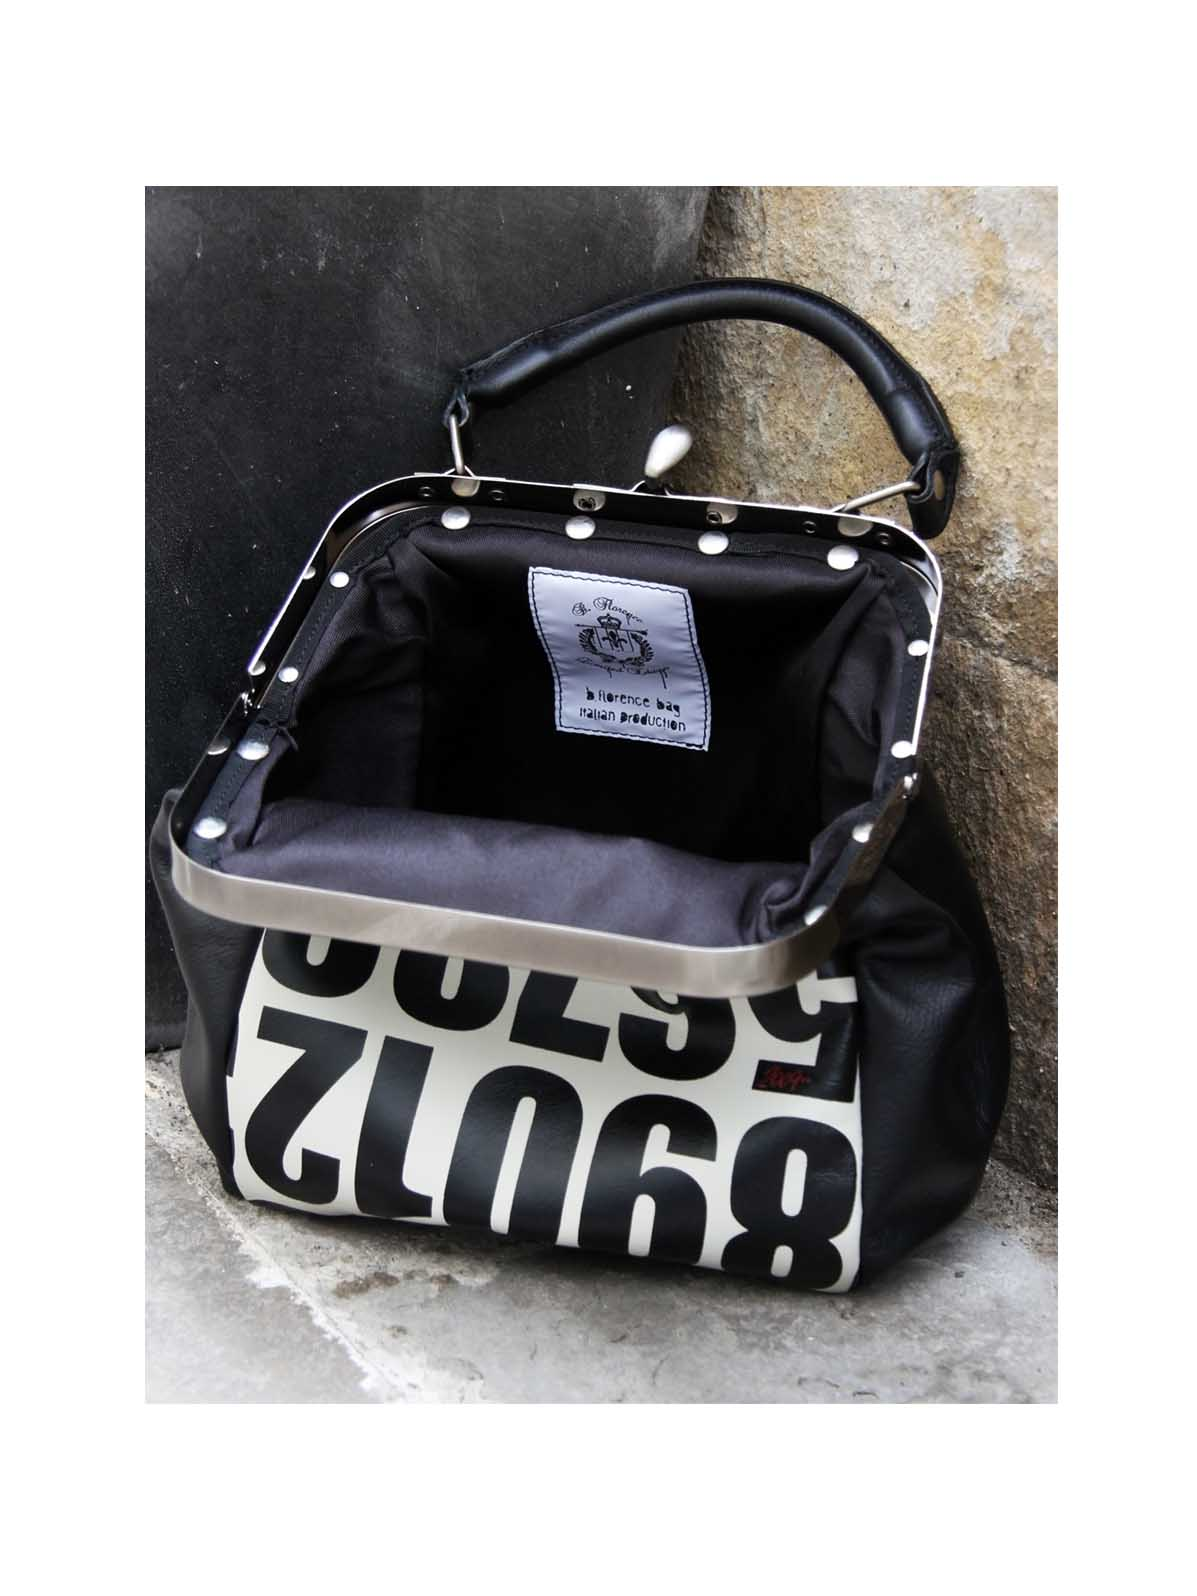 B.Florence Black and White leather handbag with numbers